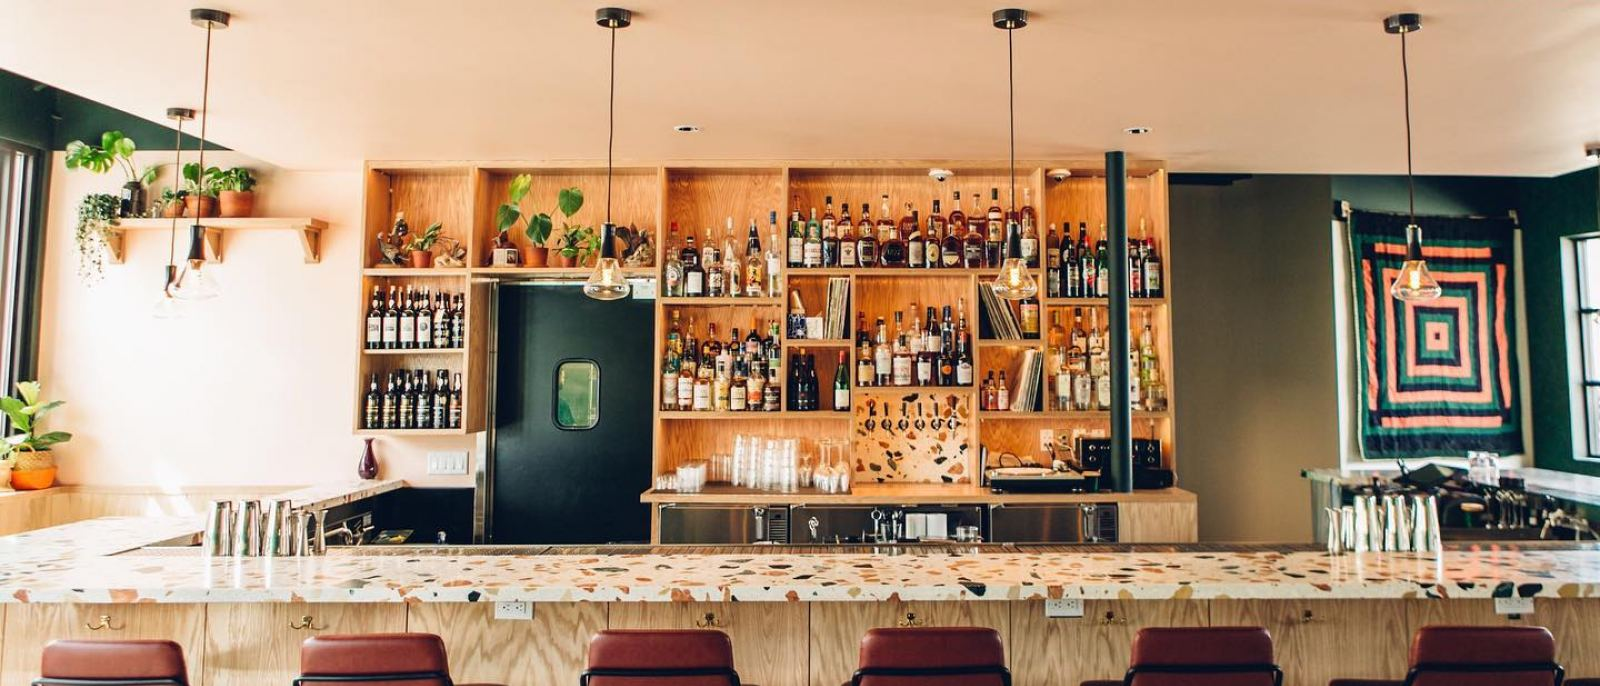 Thunderbolt bar and lounge in Historic Filipinotown